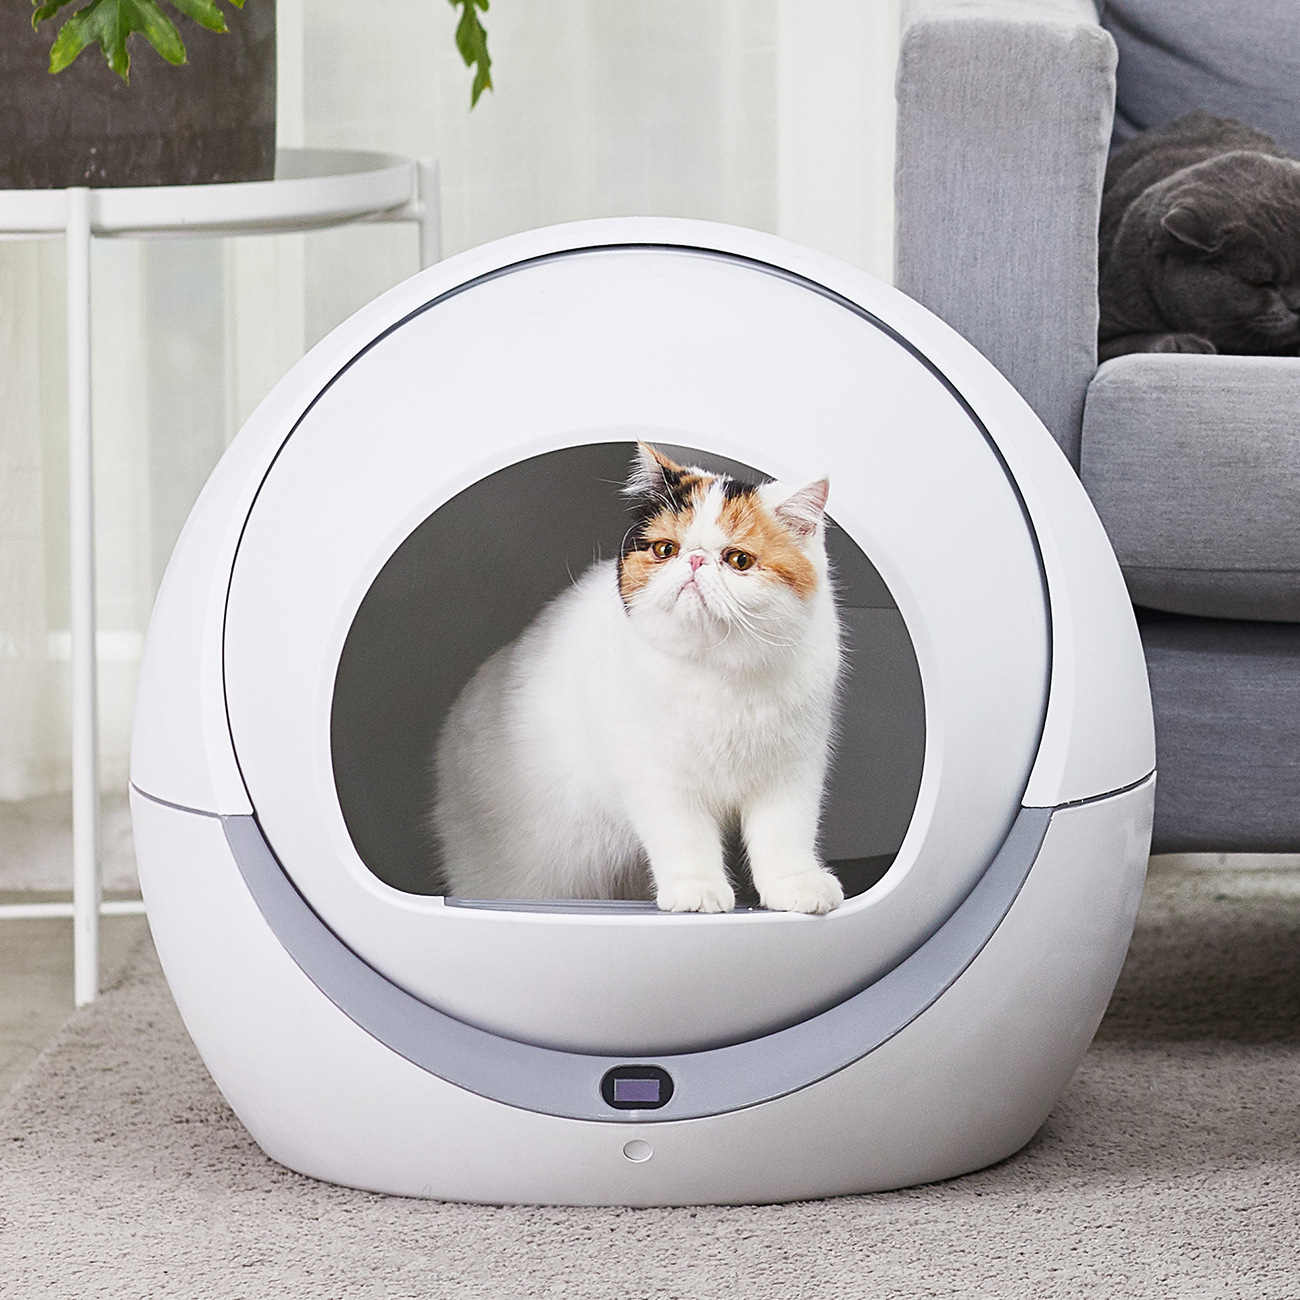 Automatic cat toilet automatic cat sandbox induction rotary cleaning cat robot litter large kitty self cleaning litter box 翻轉 貓 砂 盆